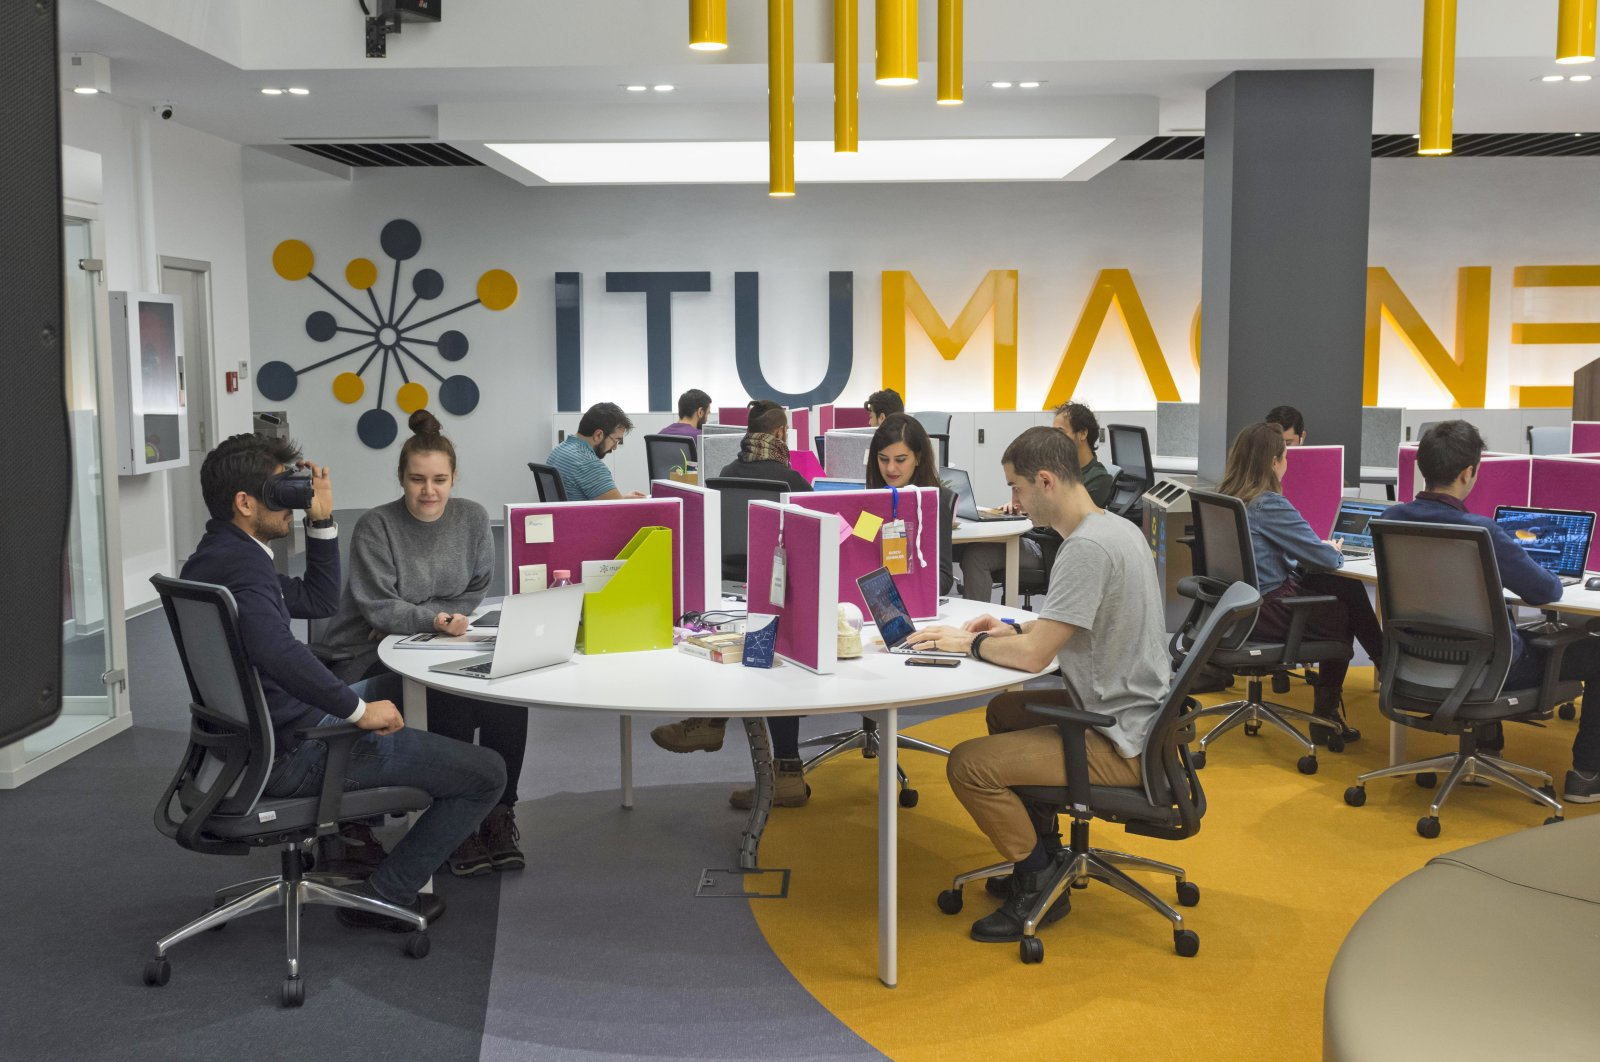 People are seen at Istanbul Technical University (ITÜ) ARI Teknokent's digital production center, ITÜ Magnet. (Sabah file photo)